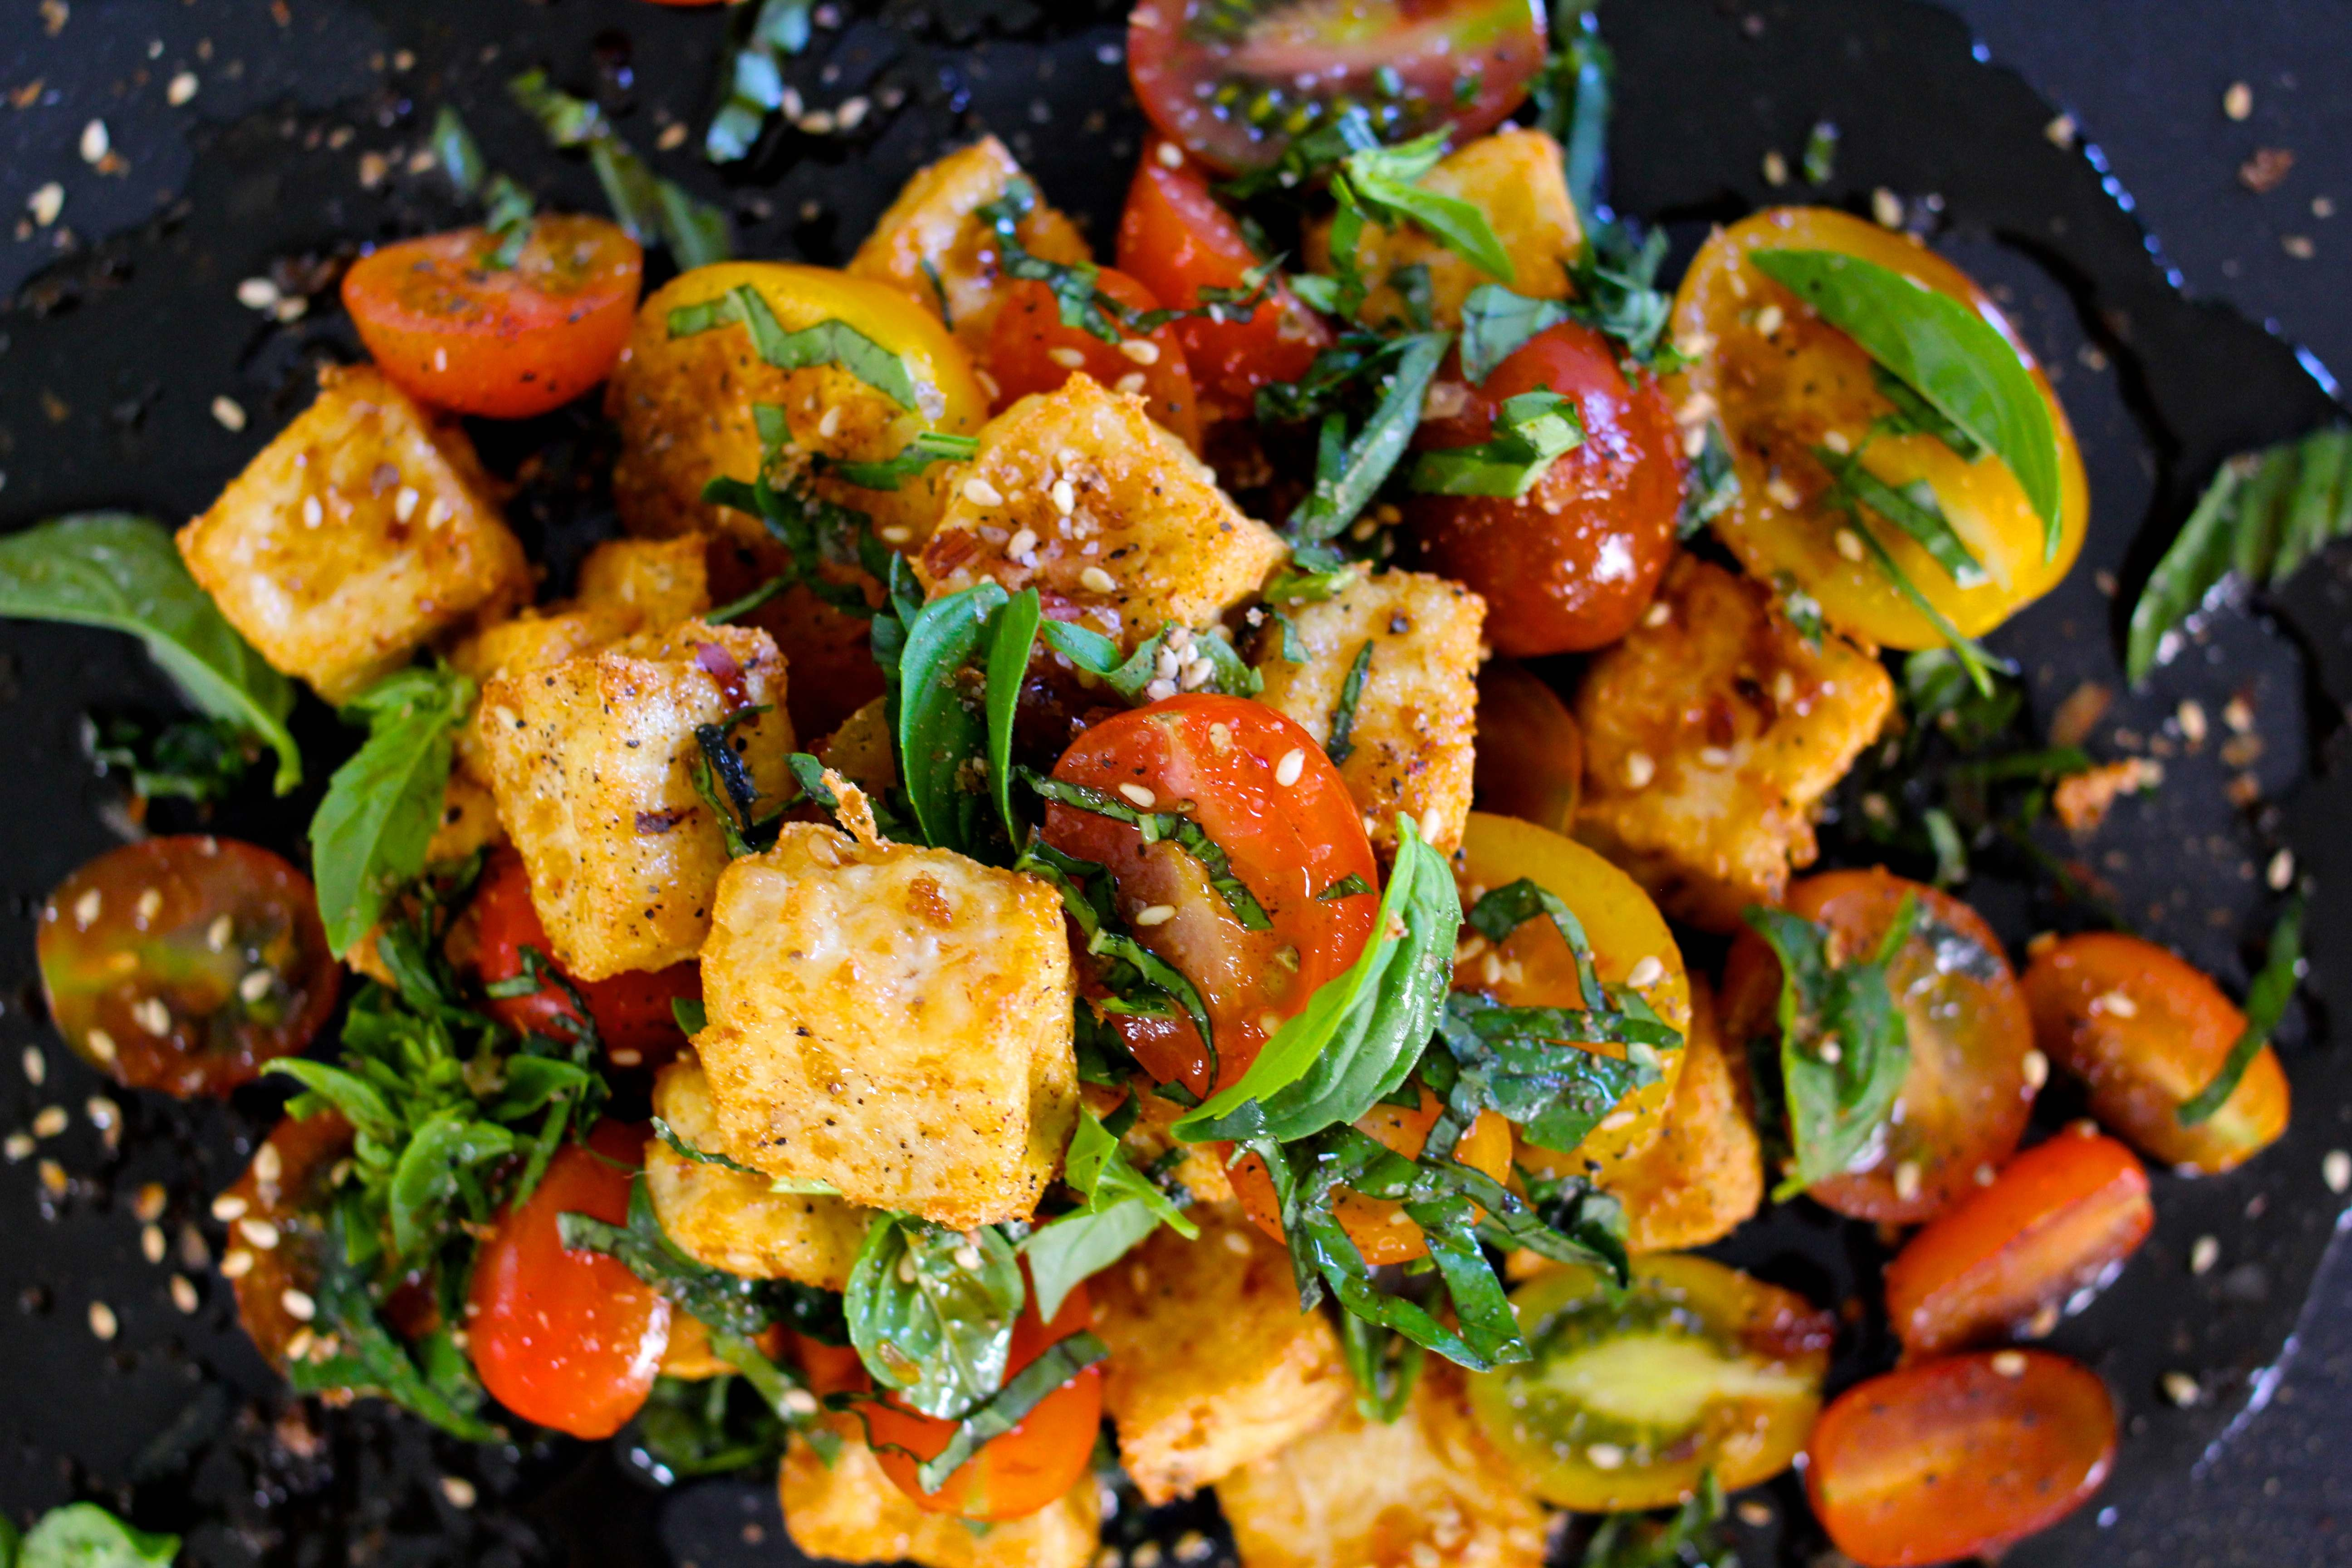 Mirin and Soy dressed tofu croutons with heirloom tomatoes and basil